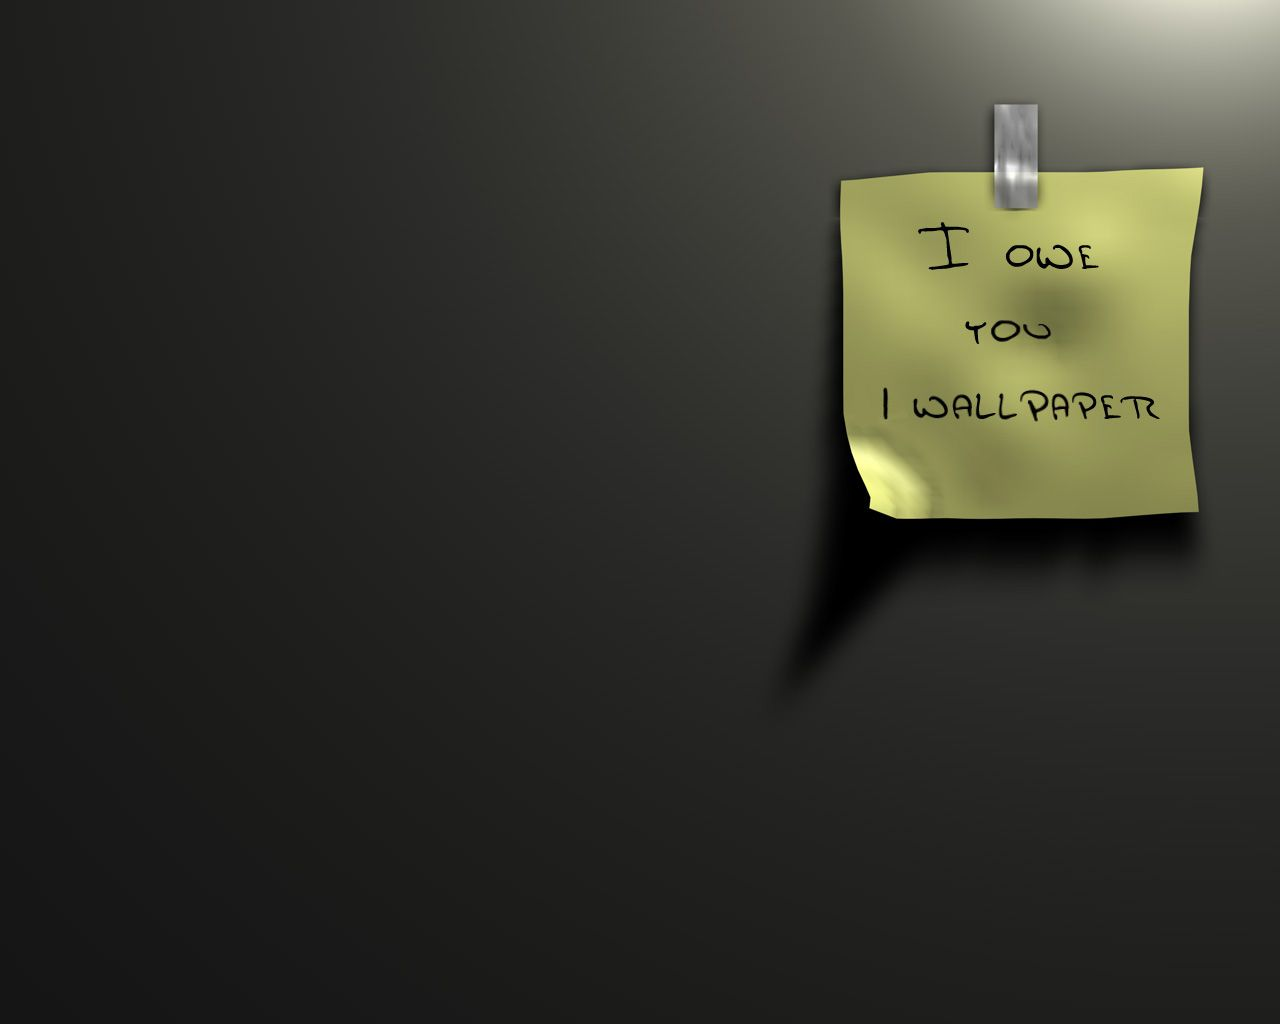 i owe you one wallpaper : wallpapers | adorable wallpapers